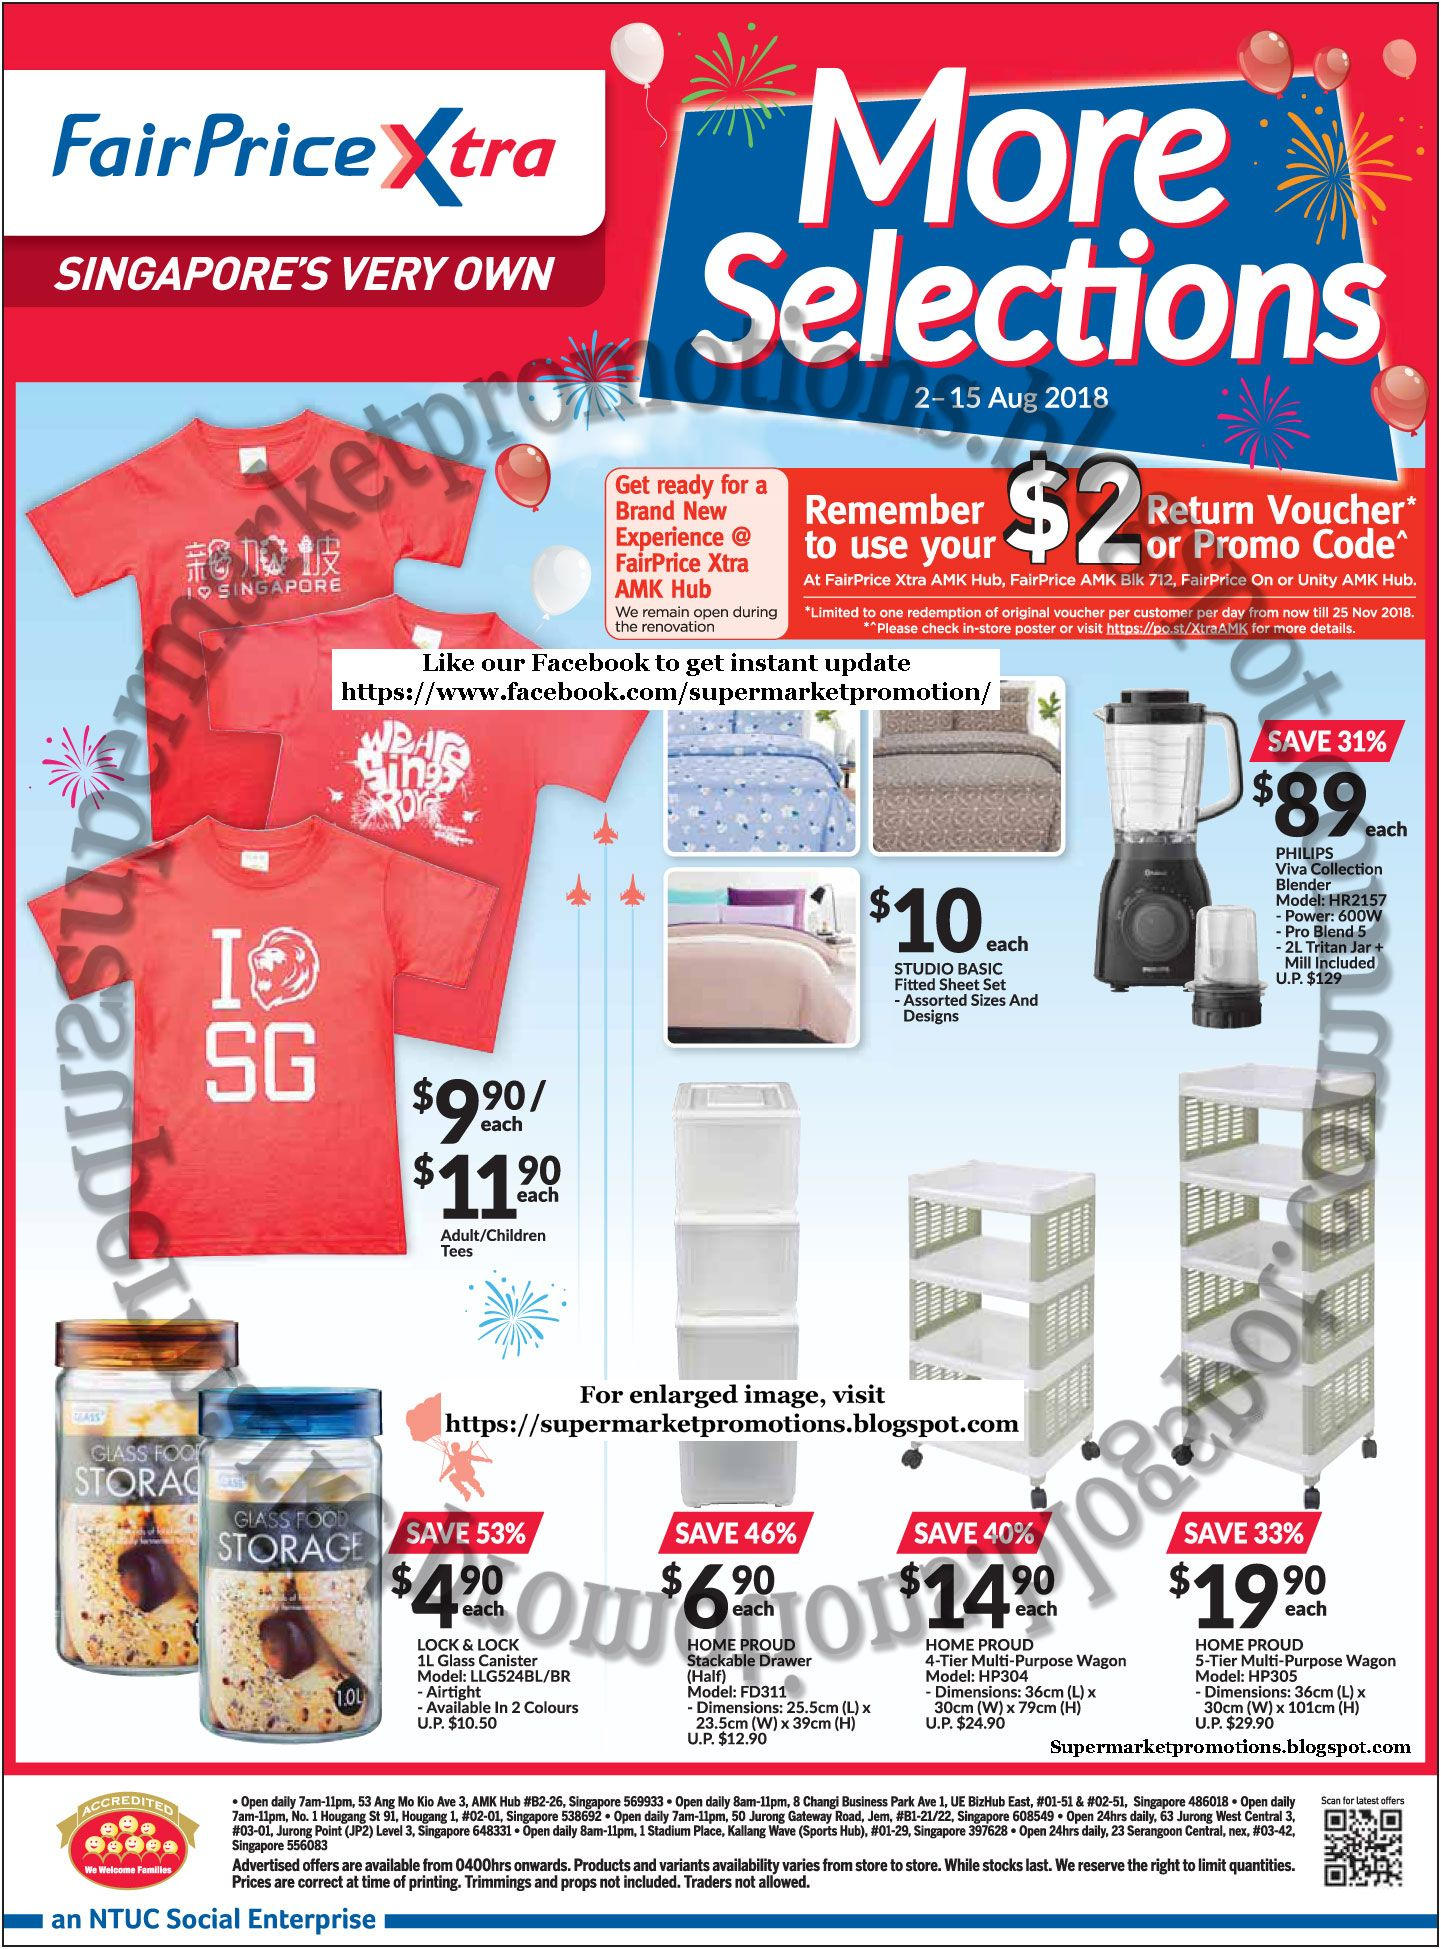 Ntuc Fairprice Fairprice Supermarket Promotion Ntuc Fairprice Xtra National Day Specials 02 15 August 20 Fair Price Fitted Sheet Set Philips Viva Collection